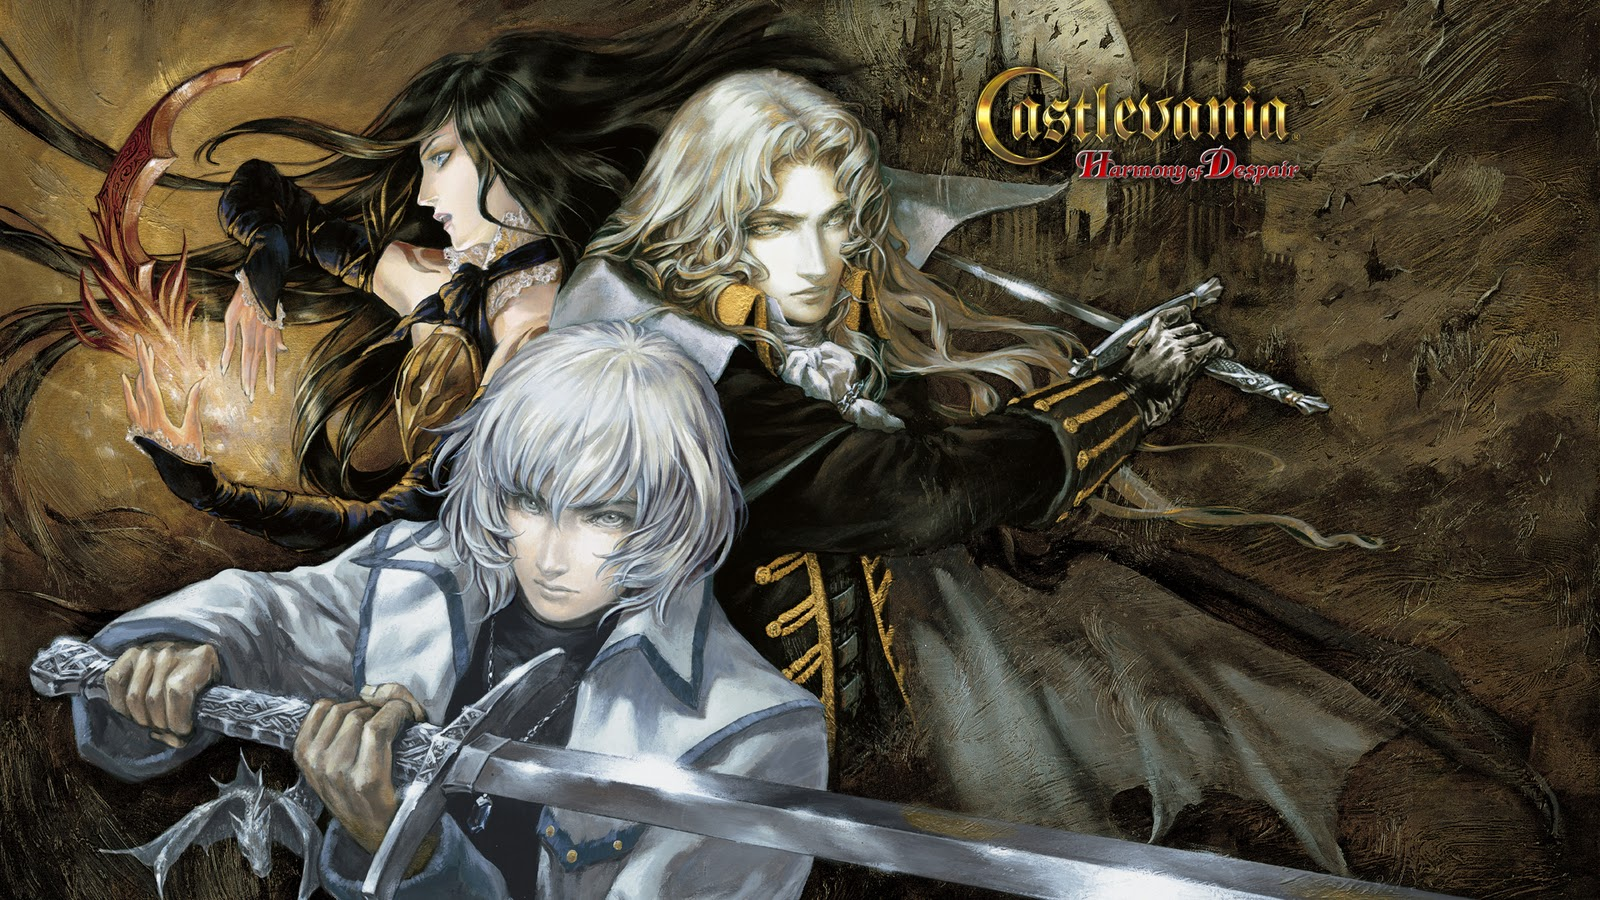 Castlevania Order Of Ecclesia Wallpaper Zerochan Anime Image Board